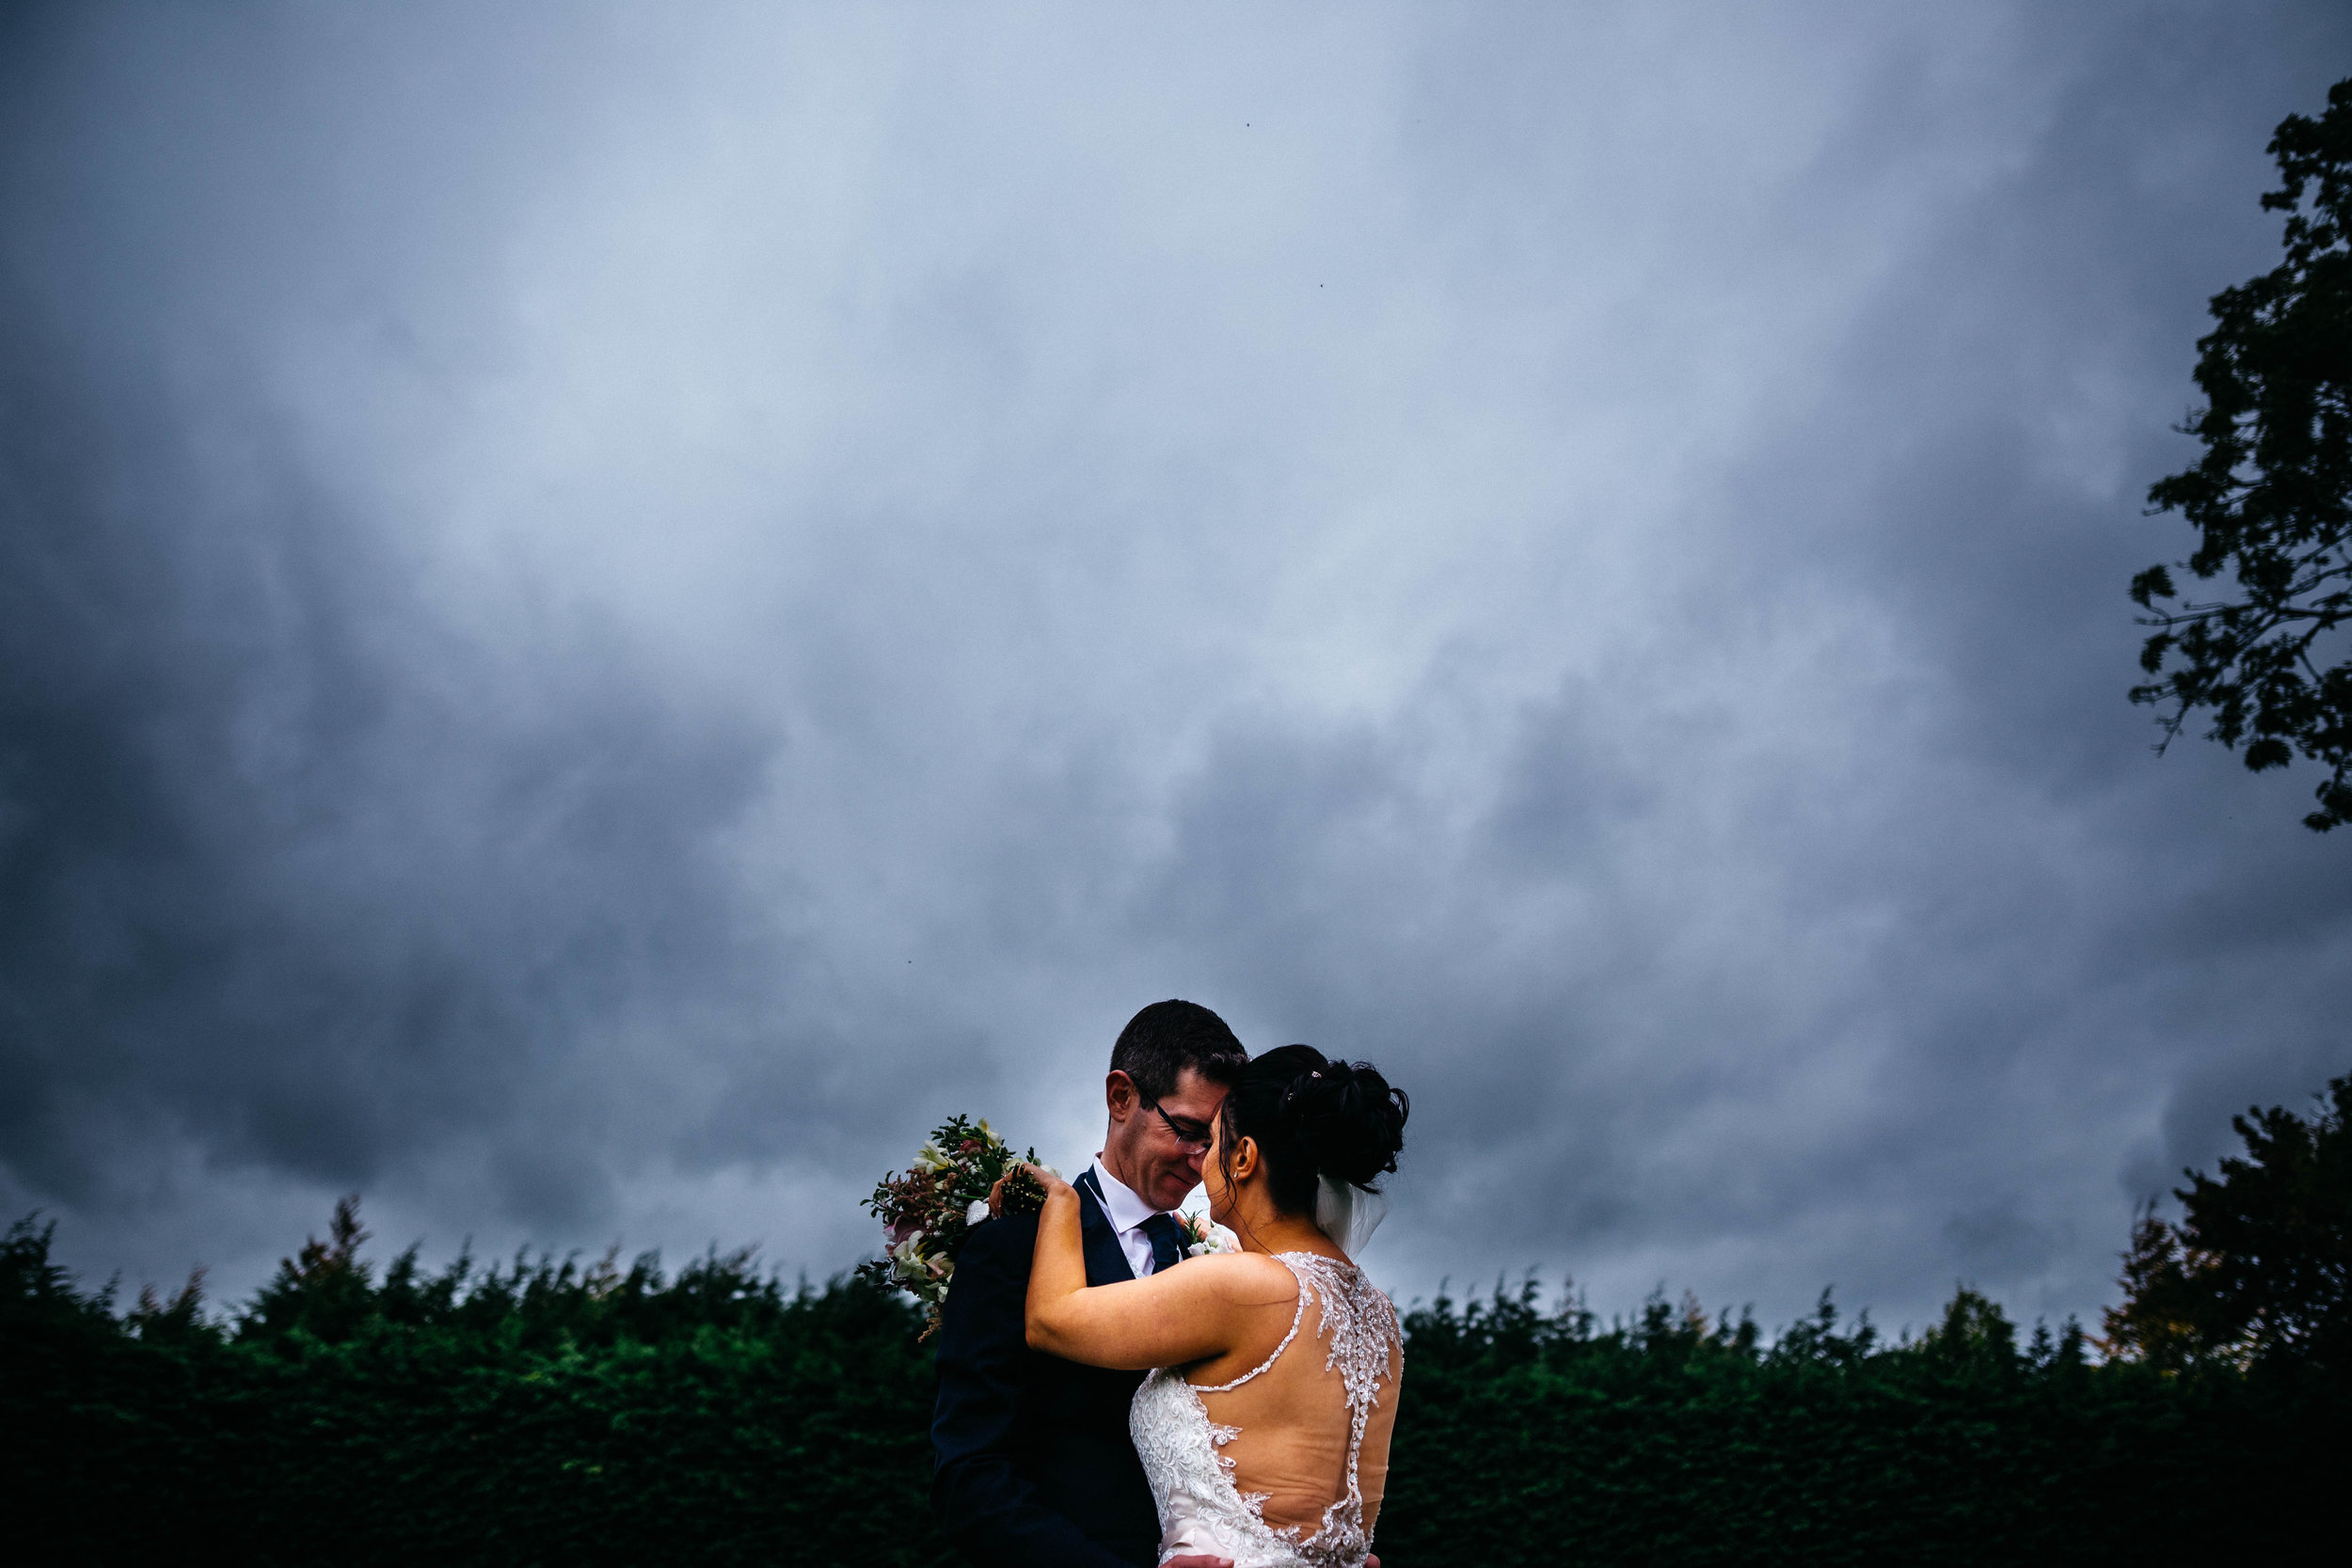 The bride and groom at Winters Barns